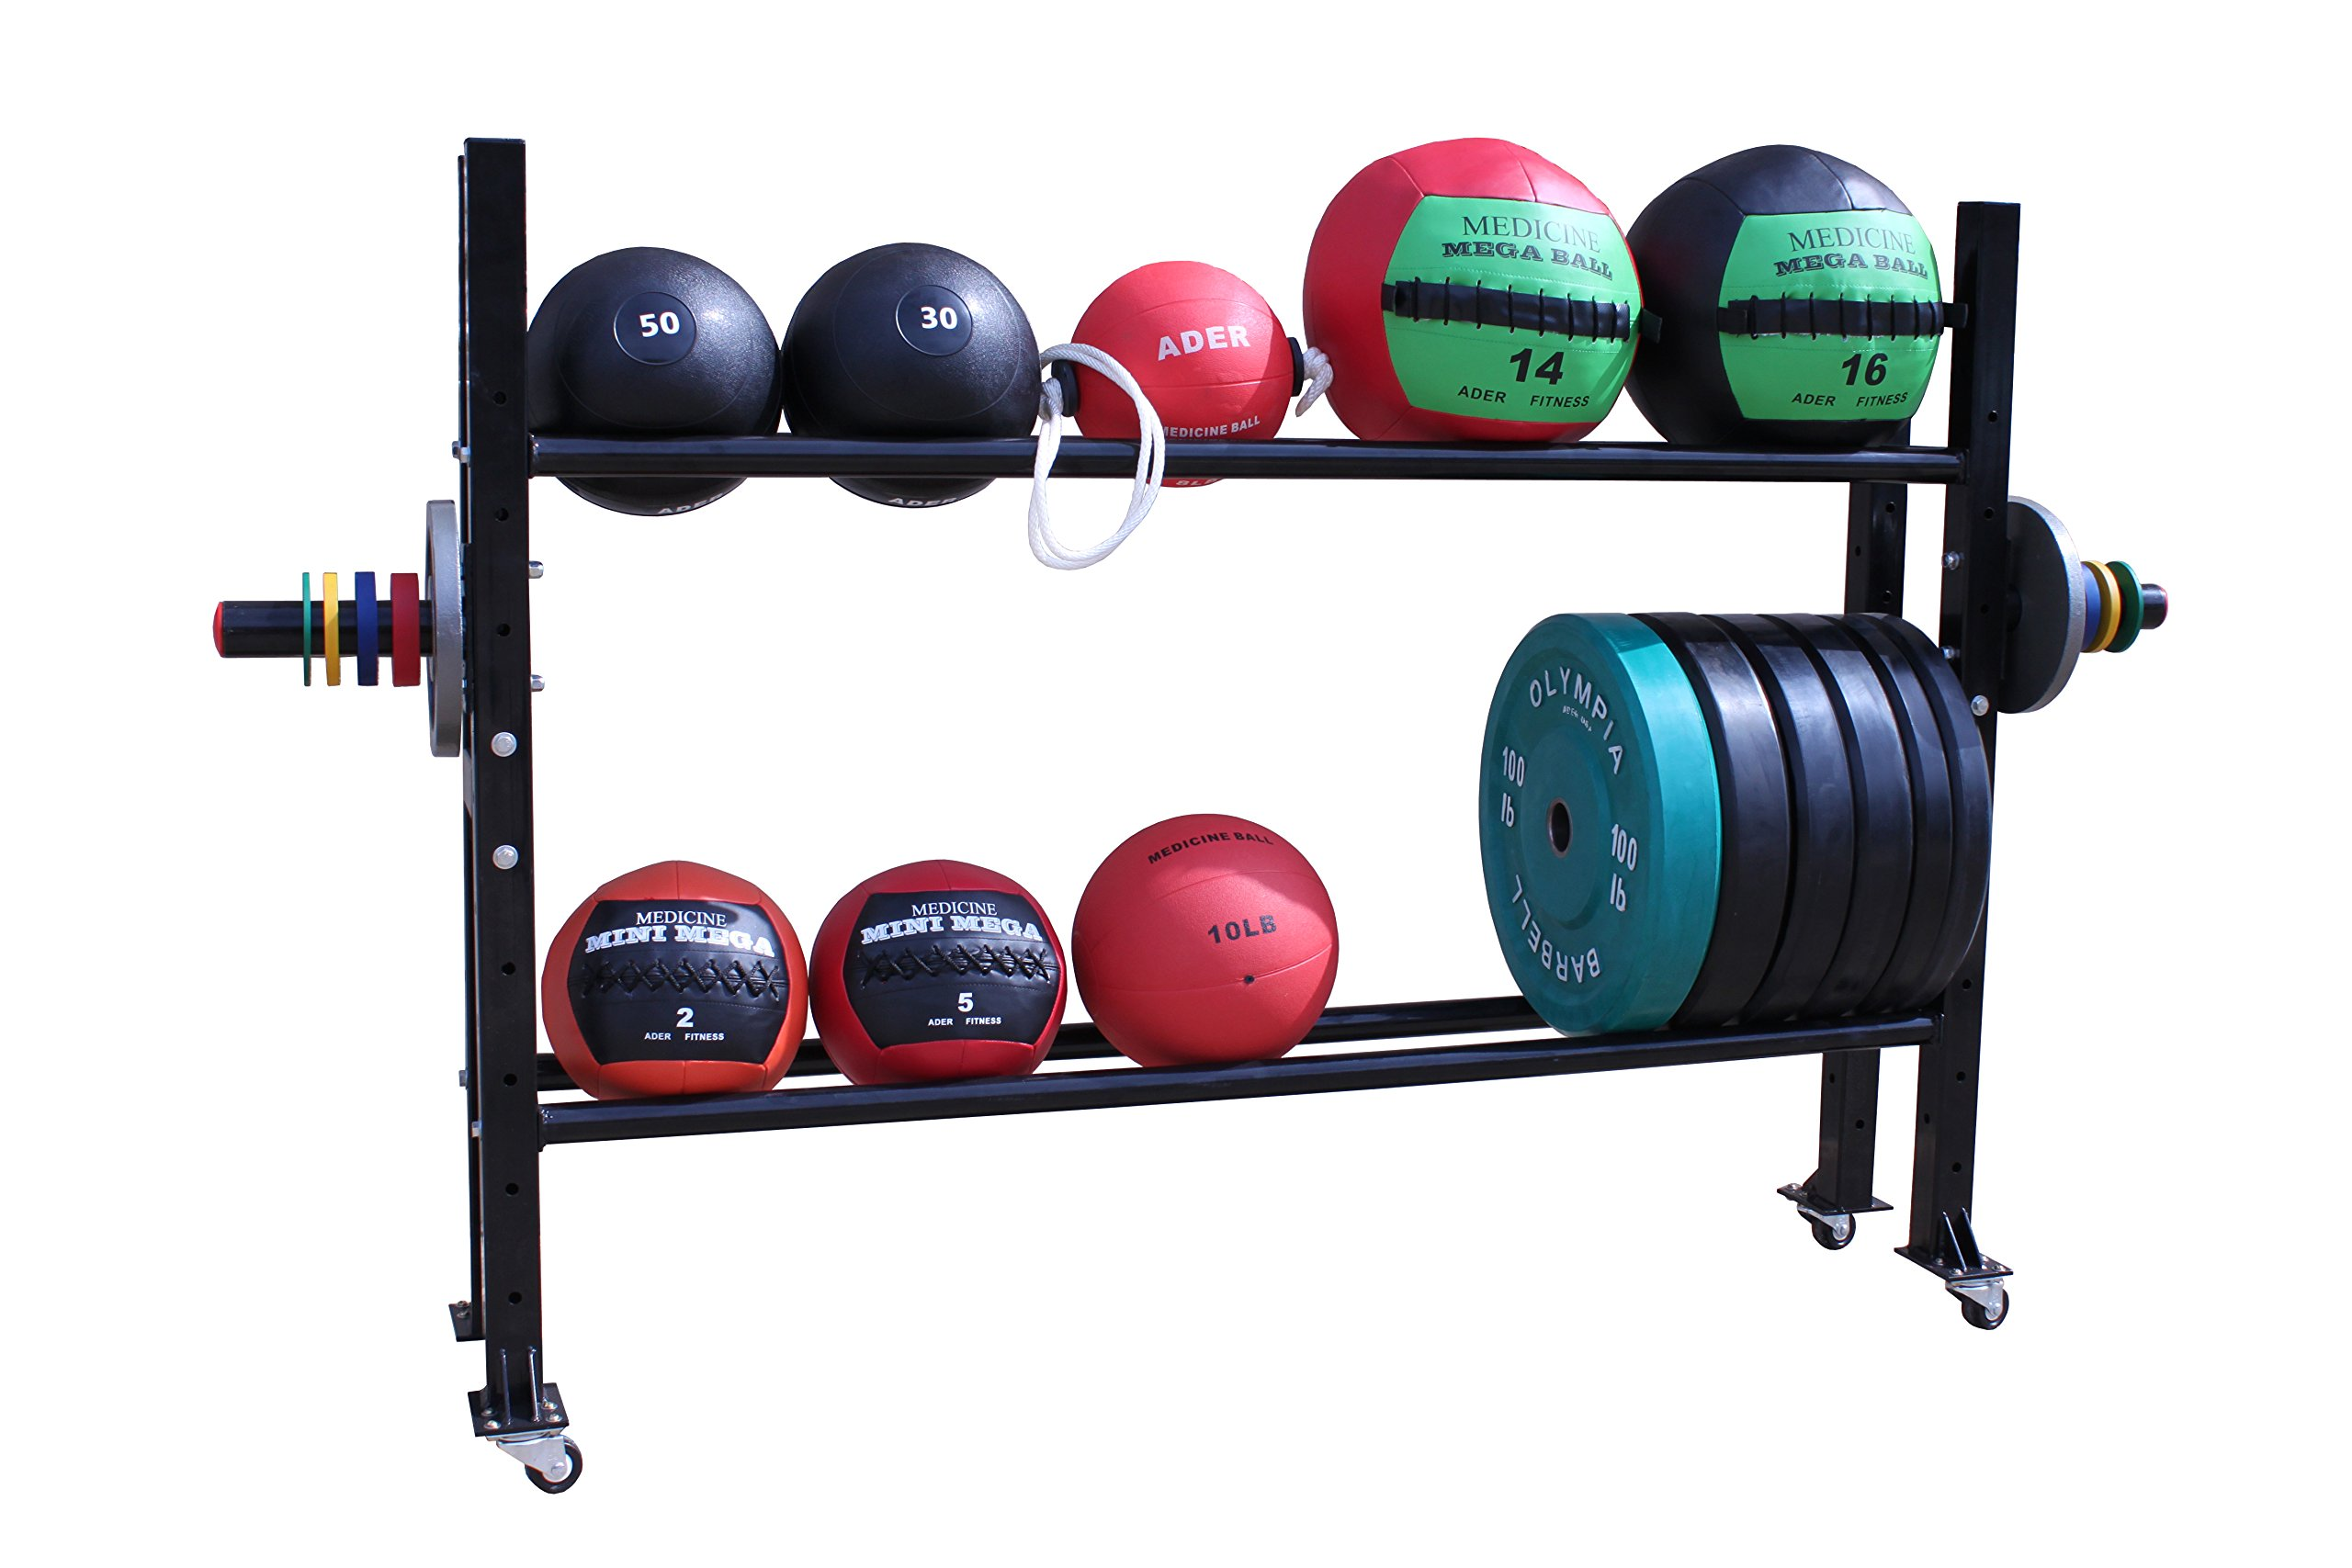 Weight Storage Rack for Sporting Goods, Plates & Medicine Balls